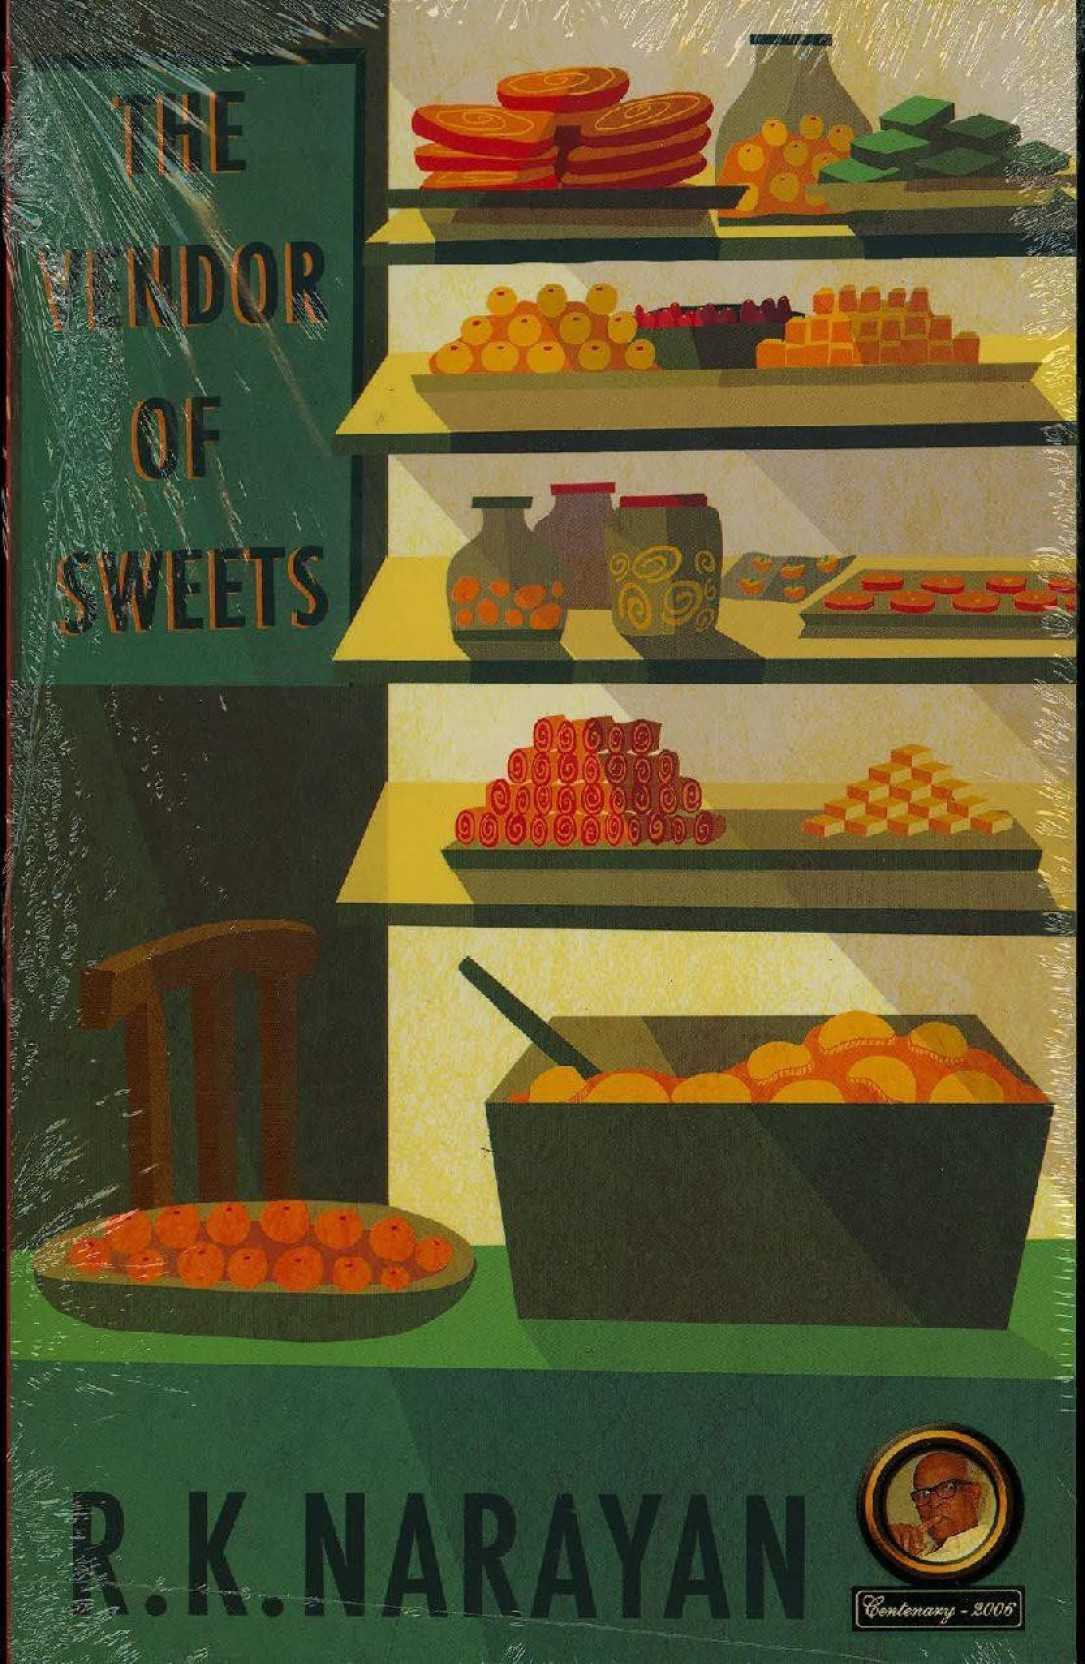 essay on the vendor of sweet rk narayan The short story the vendor of sweets by rk narayan revolves around an  intelligent man named jagan he is a creator and merchant who sells sweet  treats.